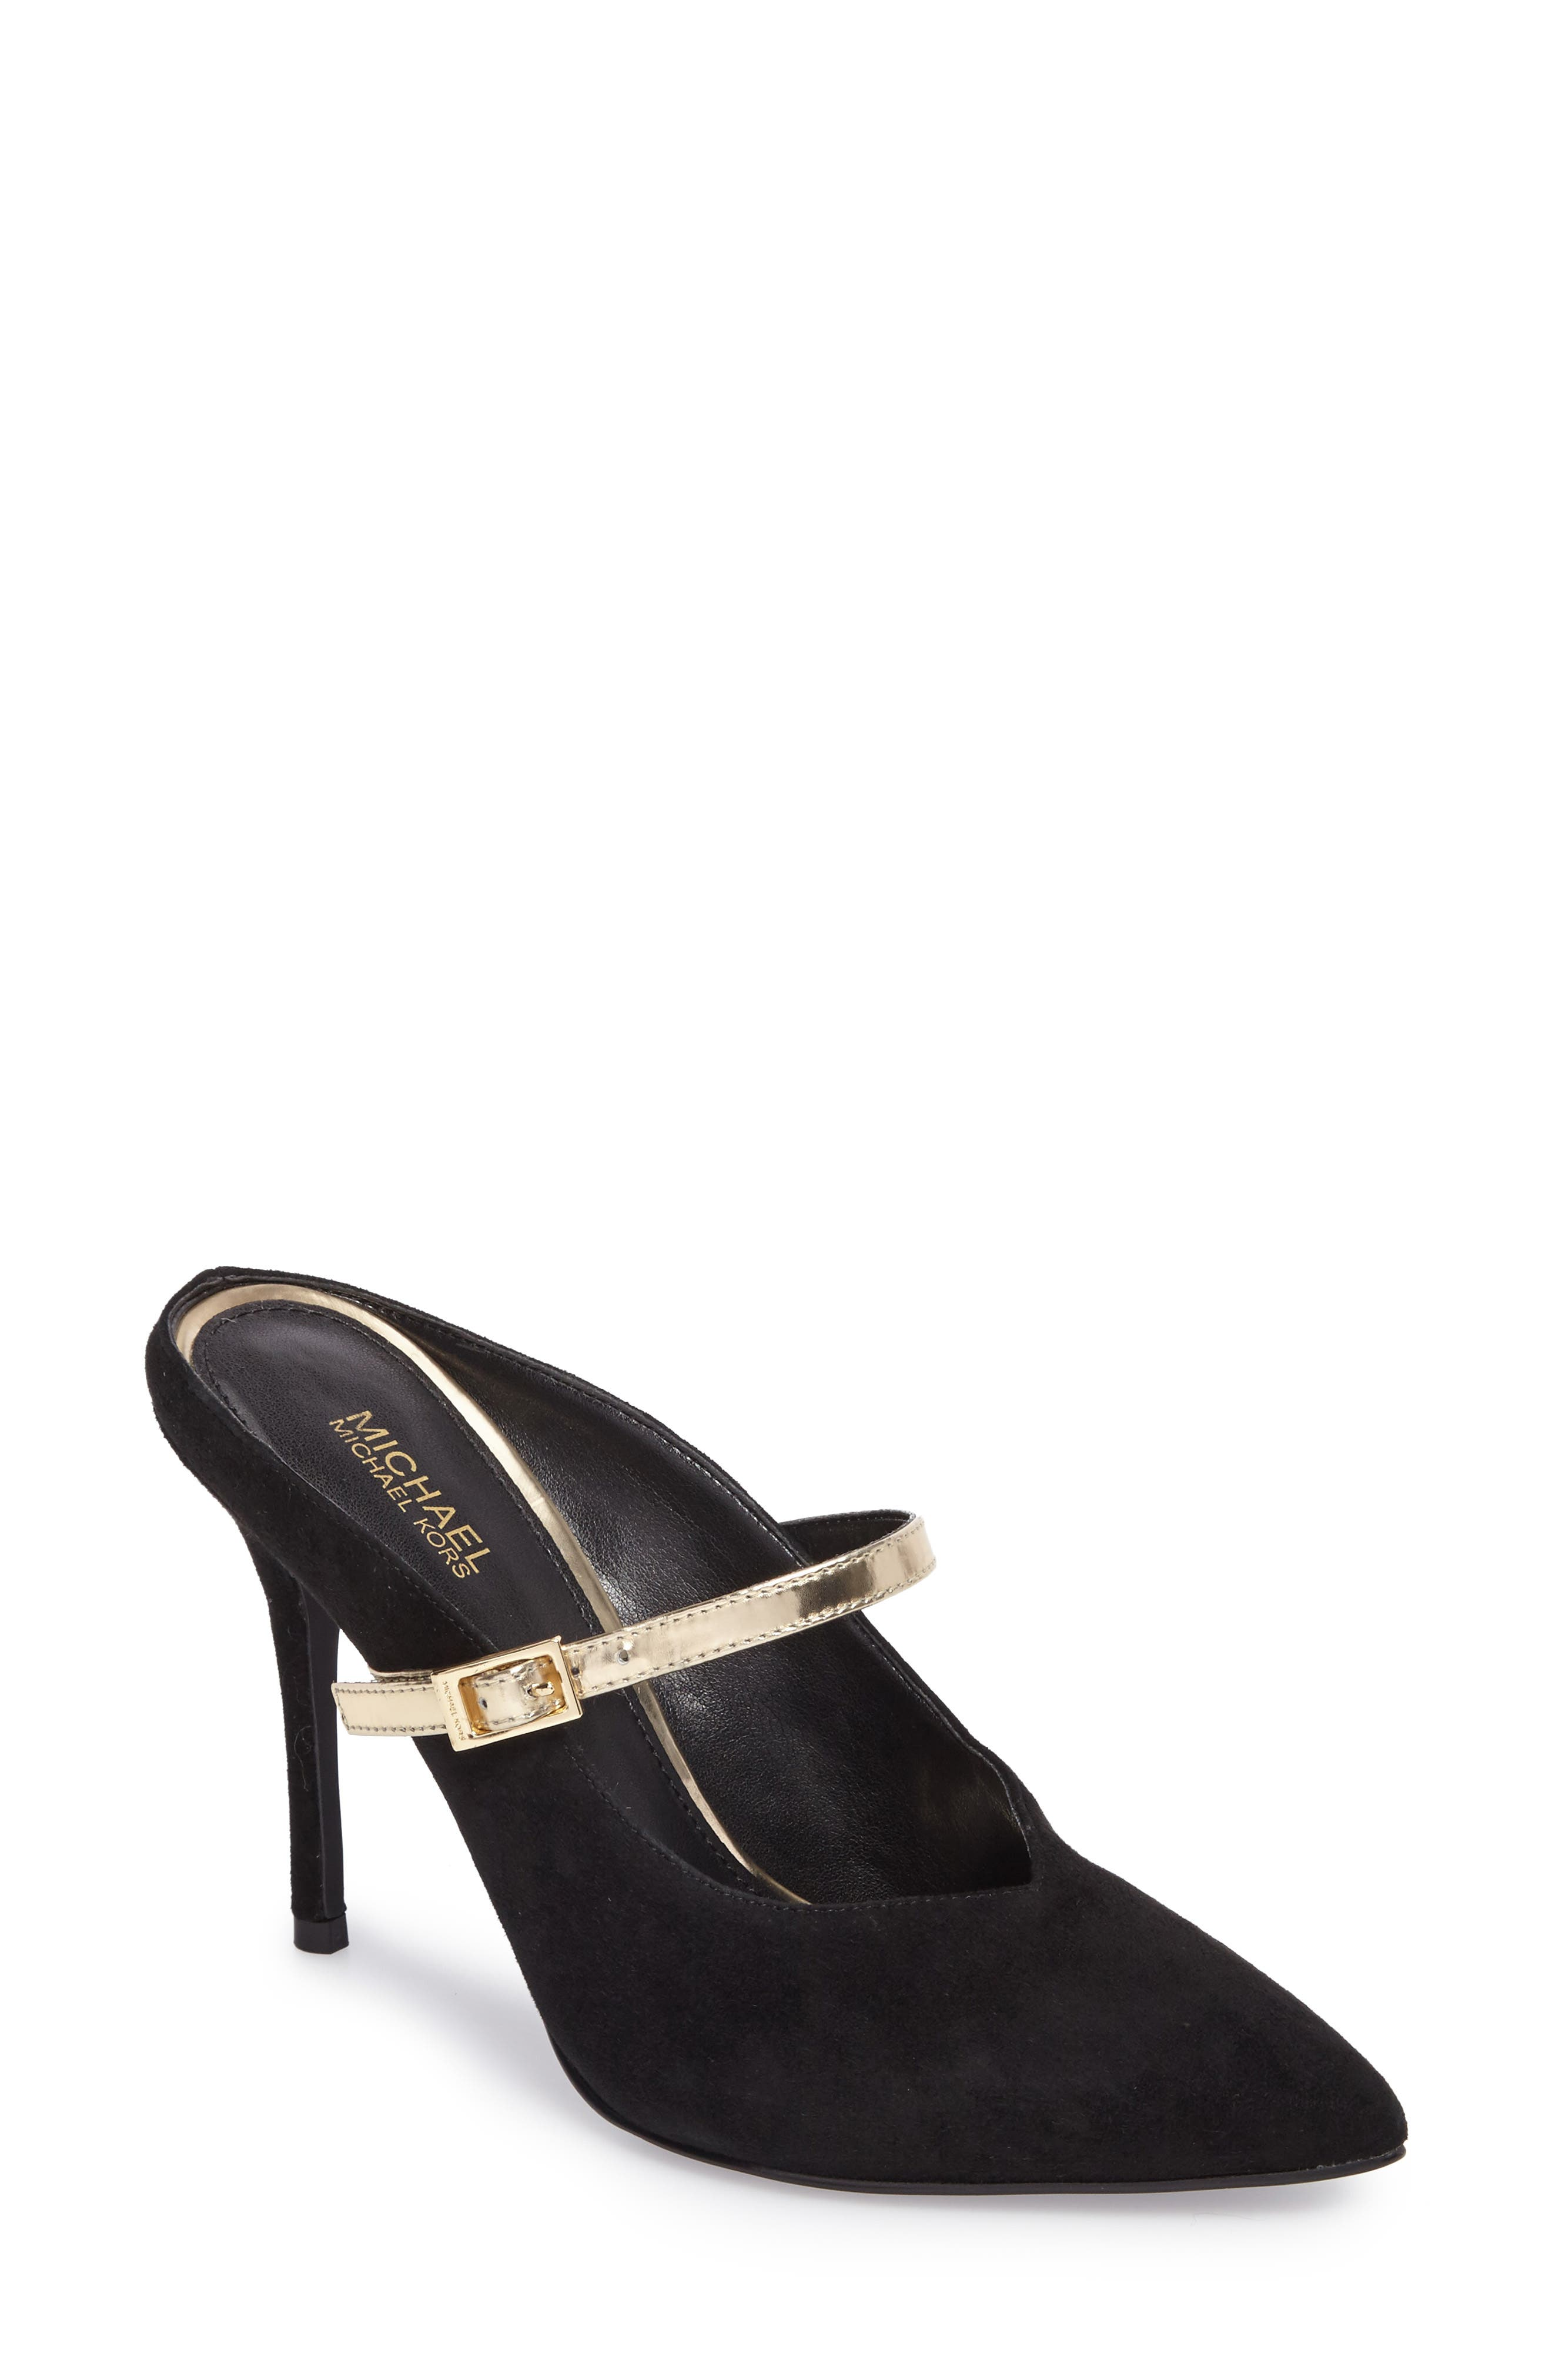 Tiegan Mary Jane Mule,                         Main,                         color,